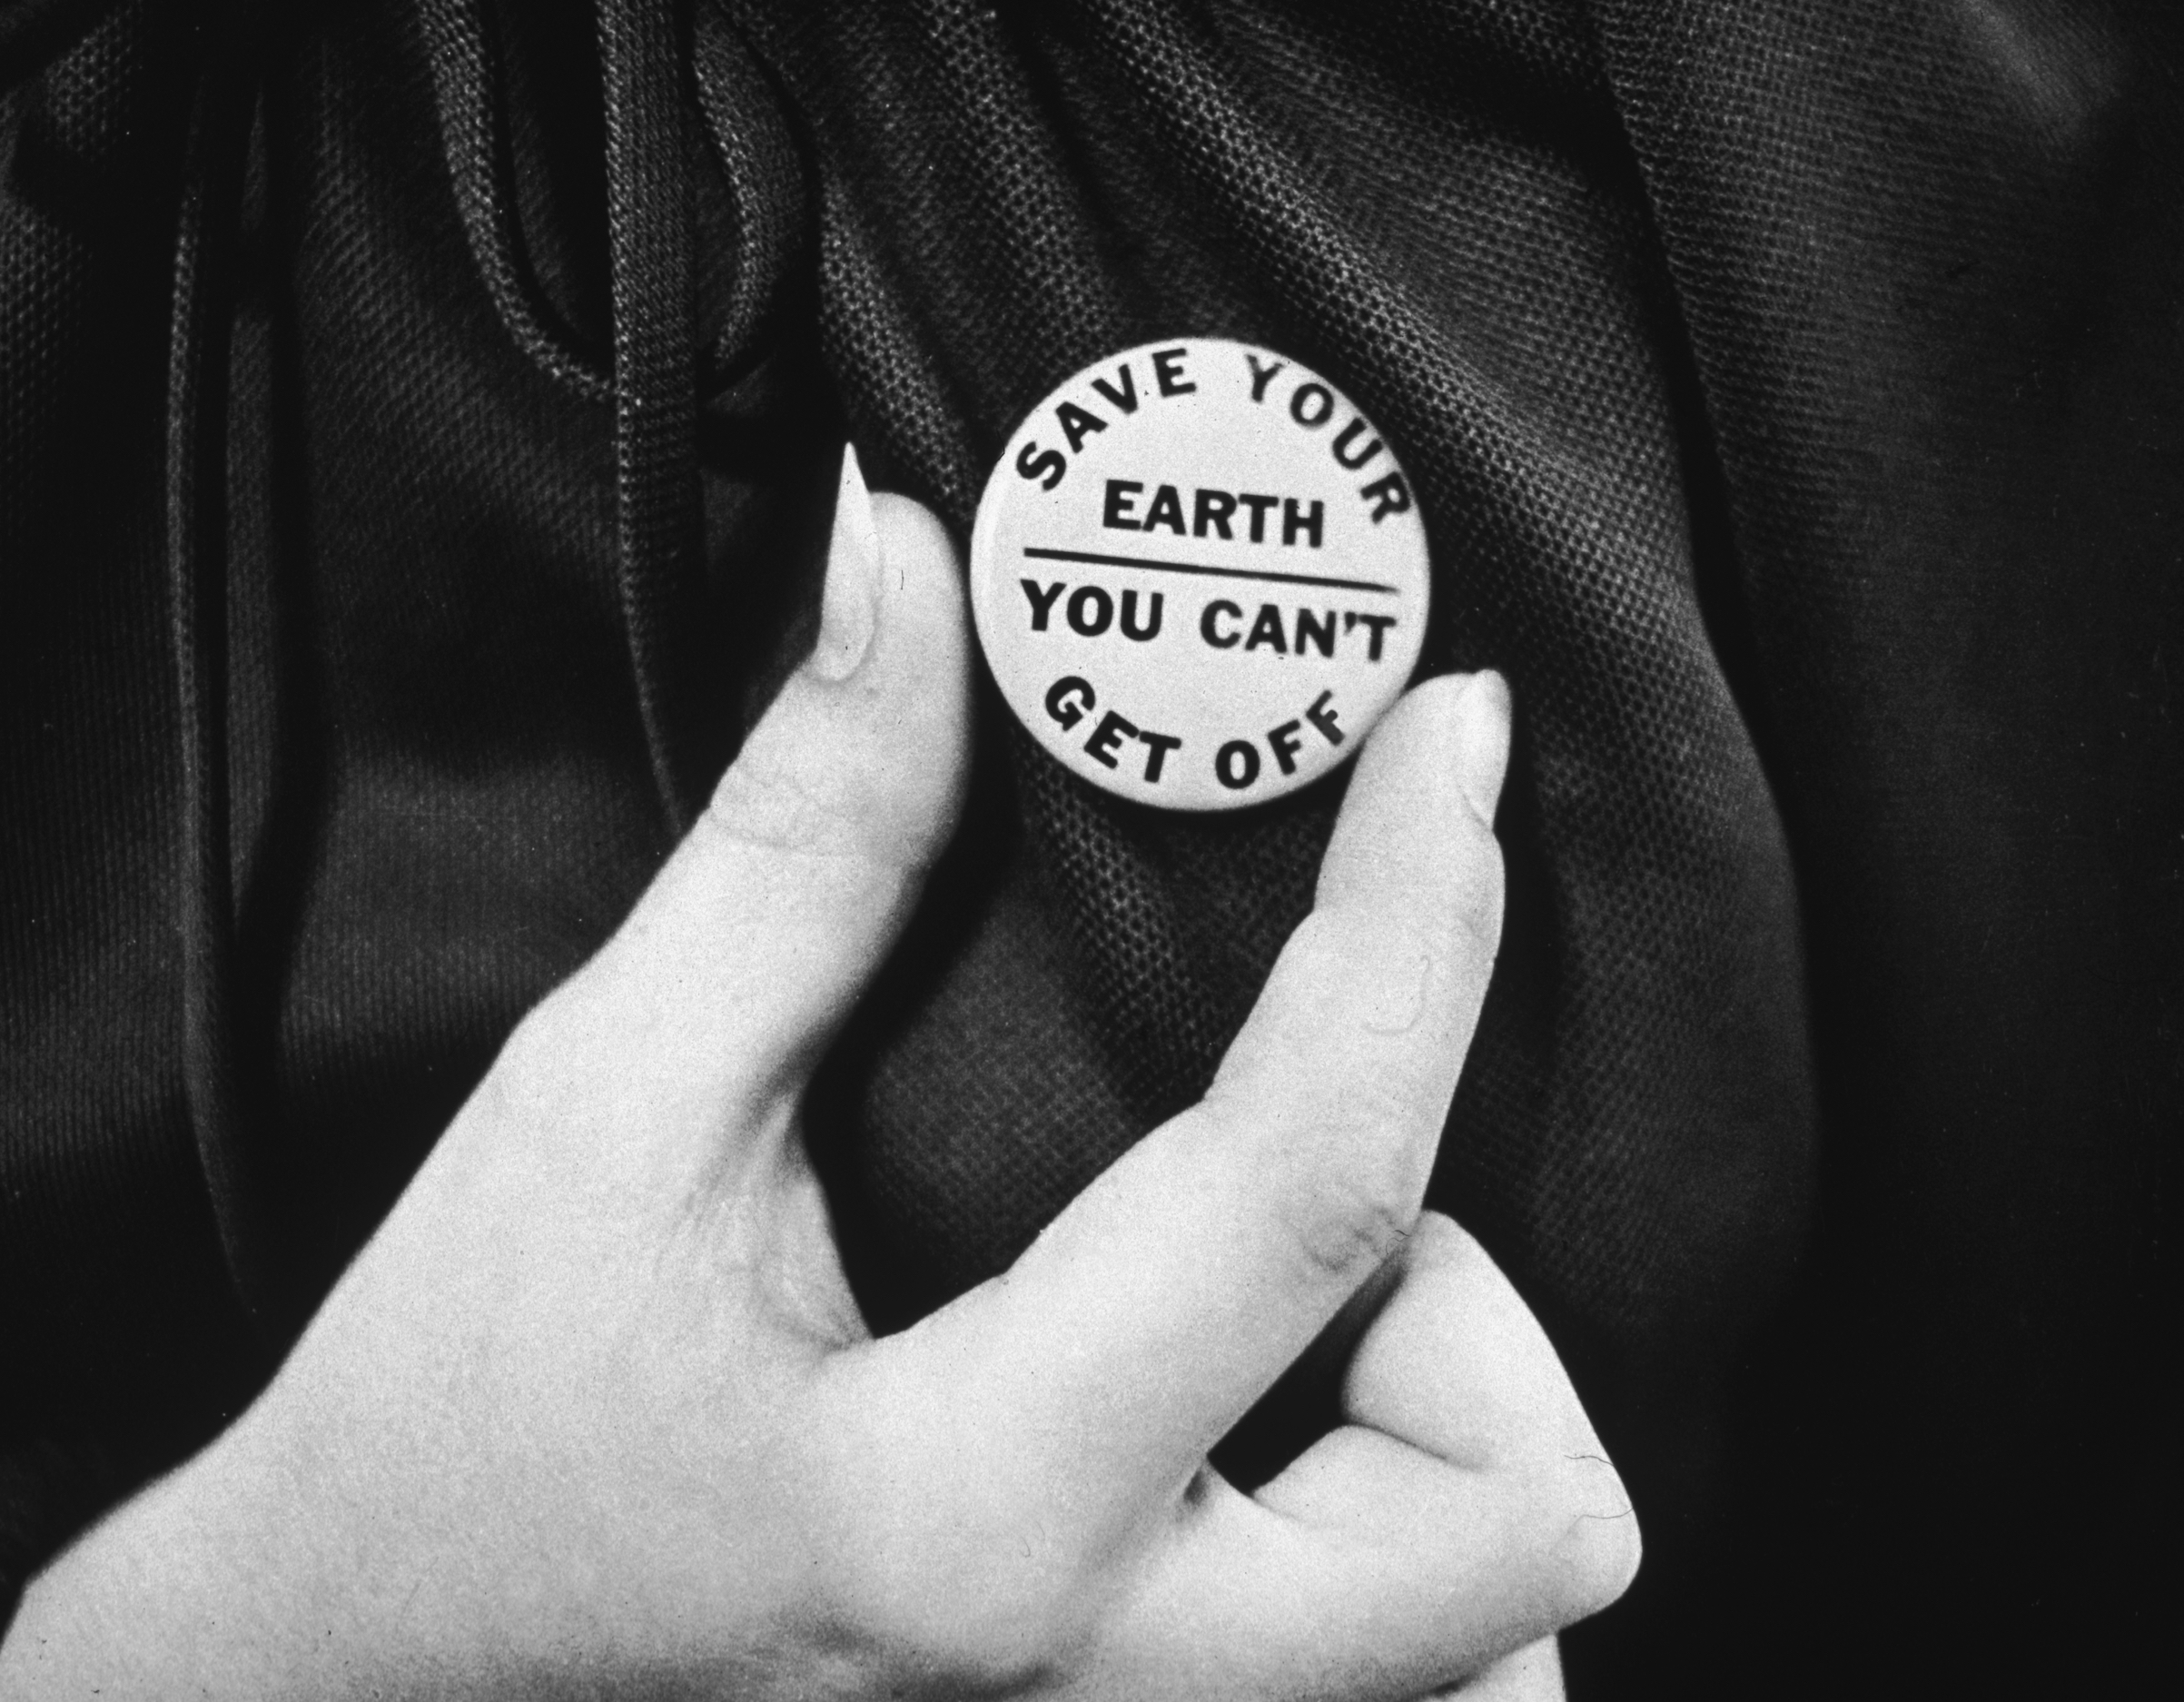 circa 1970:  A close-up of a hand holding up an Earth Day button.